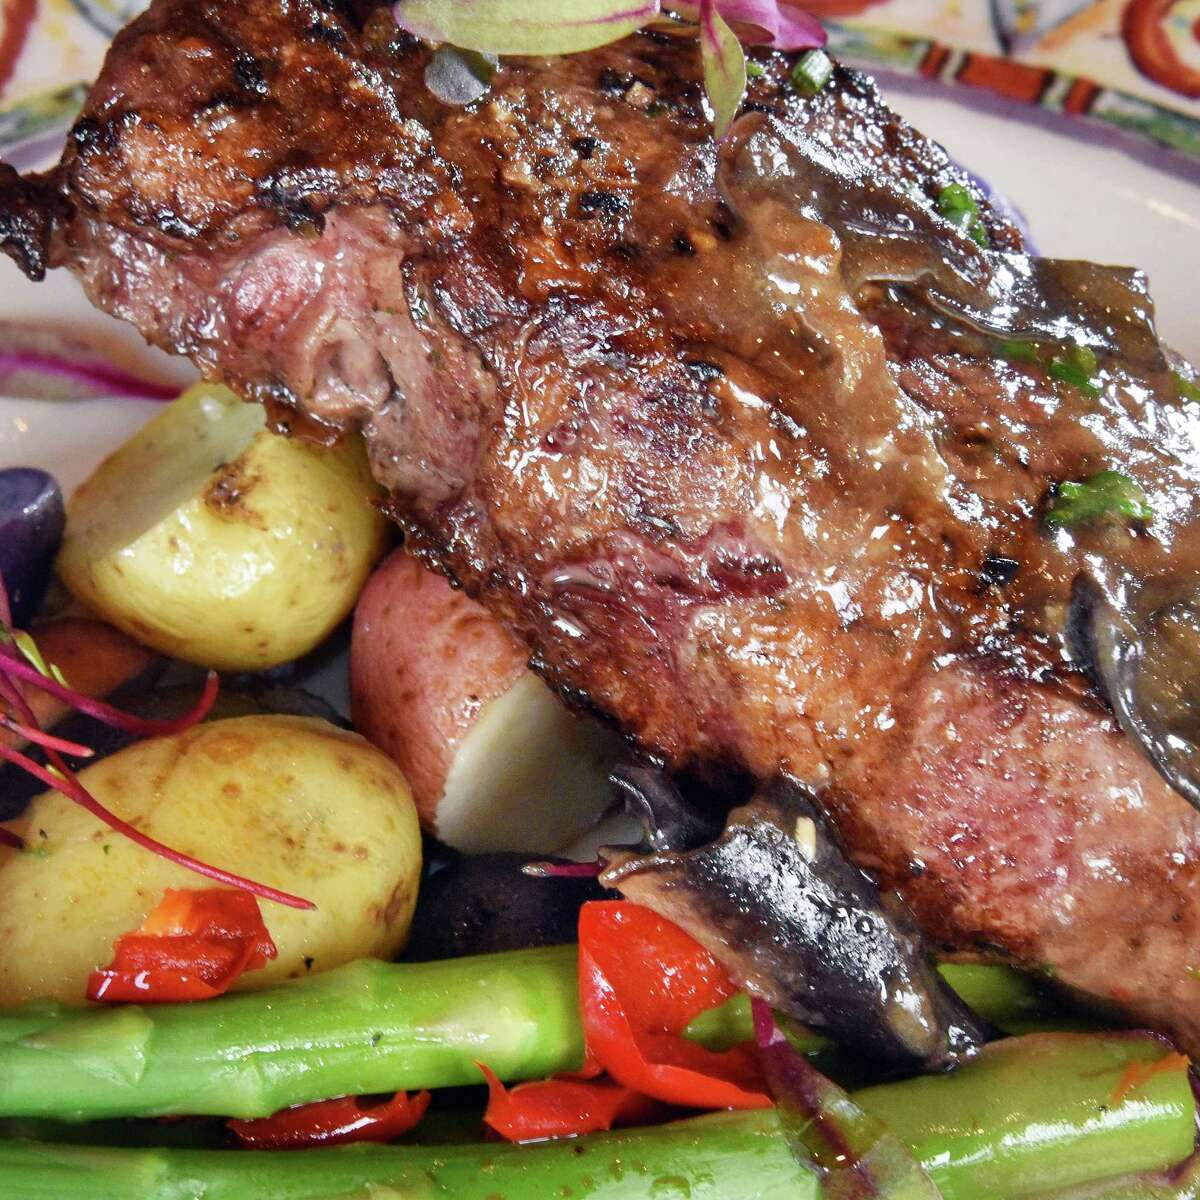 NY strip steak with exotic mushrooms at Illusive Restaurant Thursday May 17, 2018 in Rensselaer, NY. (John Carl D'Annibale/Times Union)